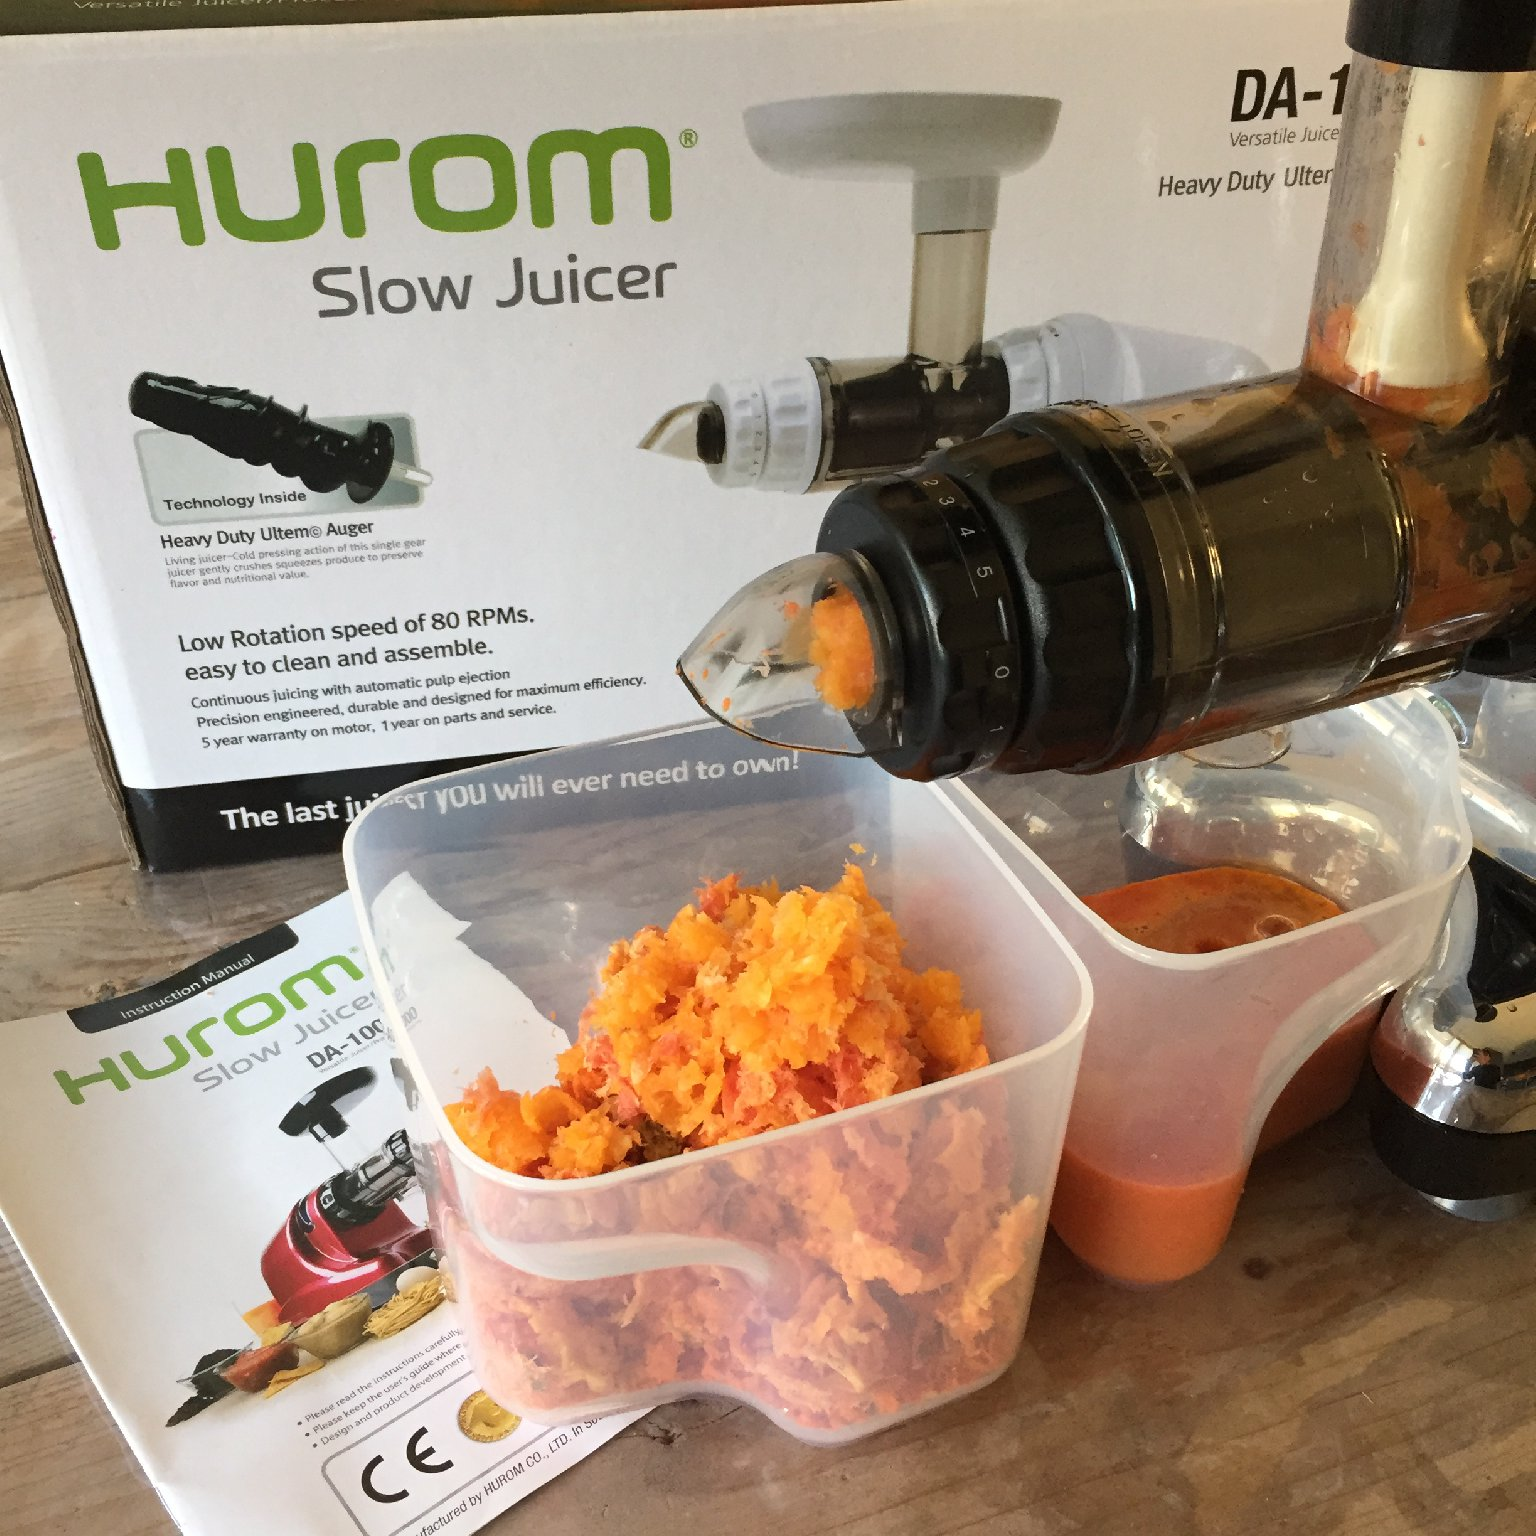 Slow Juicer Test : Foodilove test Hurom Slowjuicer - FOOD I LOvE